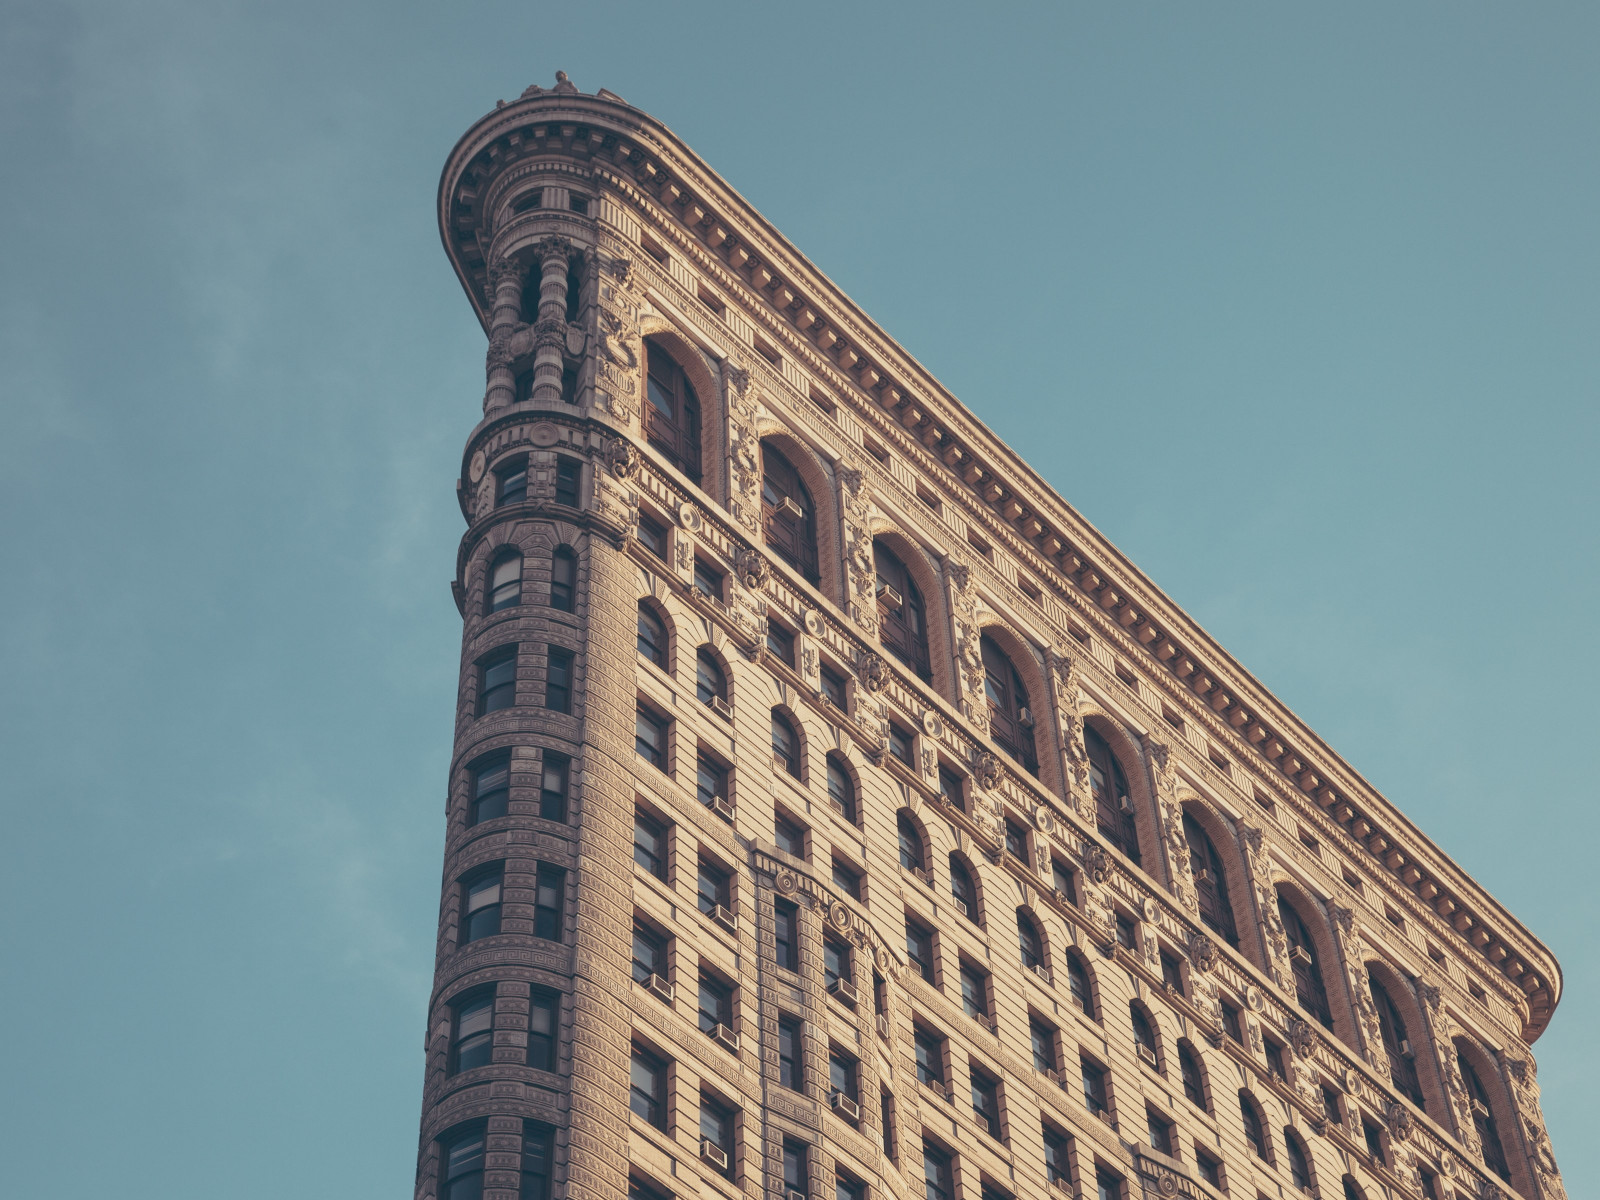 Flatiron building in New York wallpaper 1600x1200